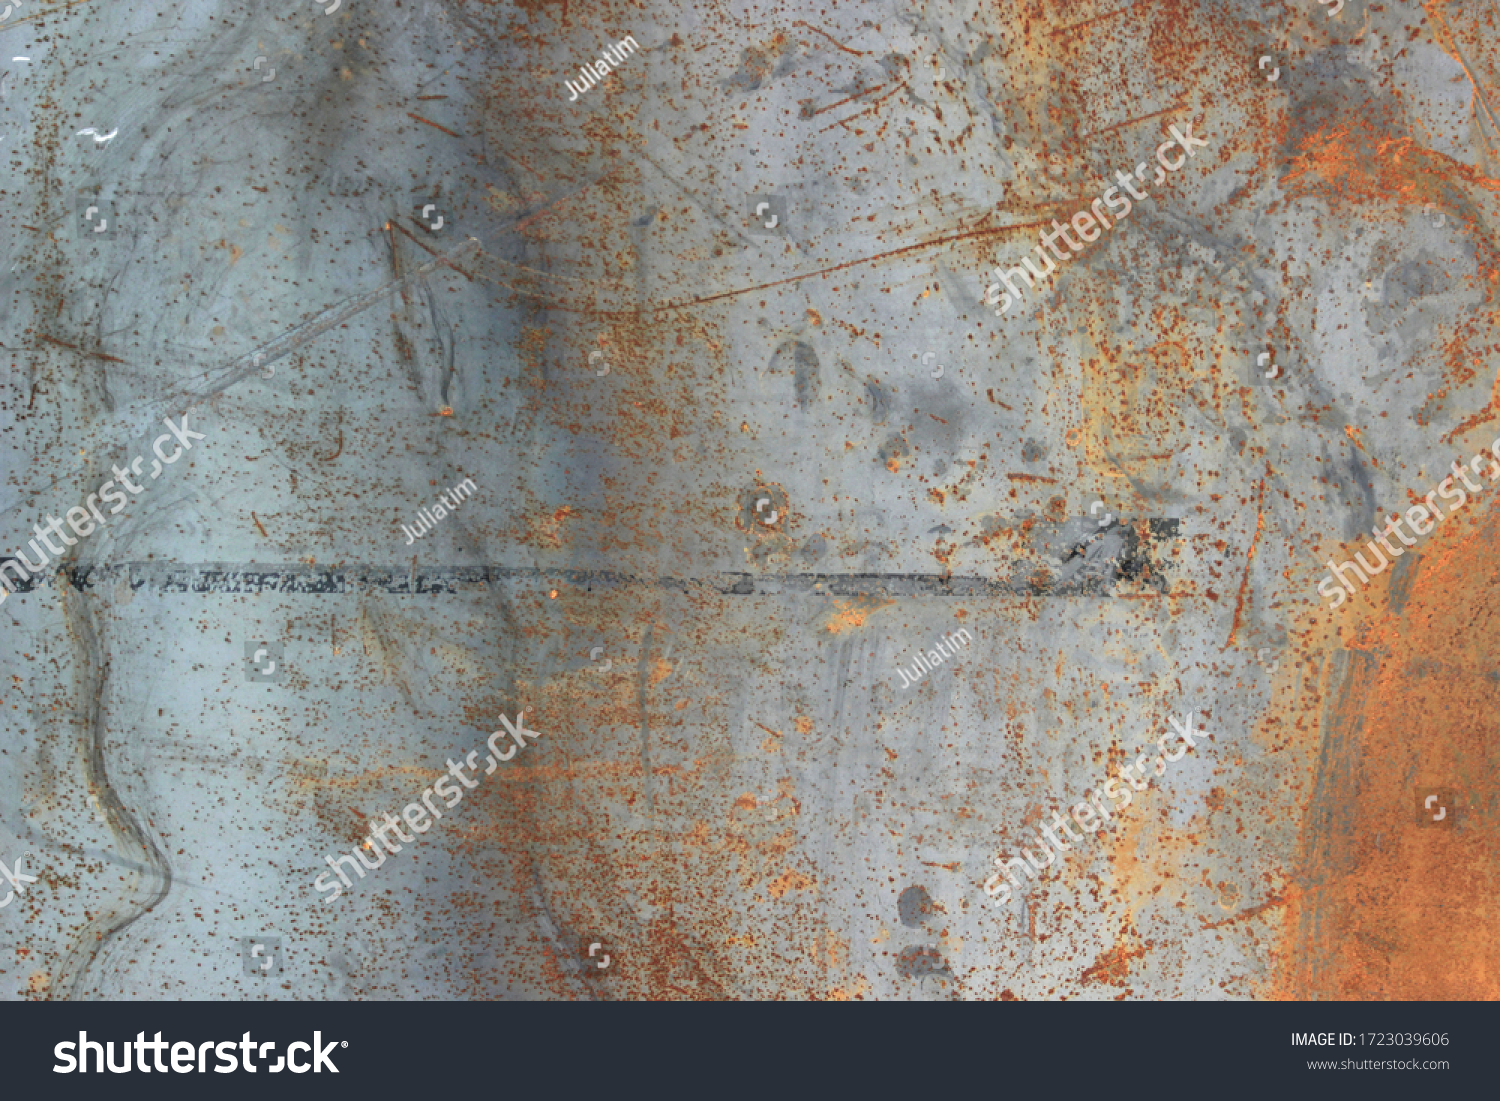 Backgrounds and textures concept.Blurred gray rusty grunge metal texture with Instagram style filter. Vintage effect. #1723039606